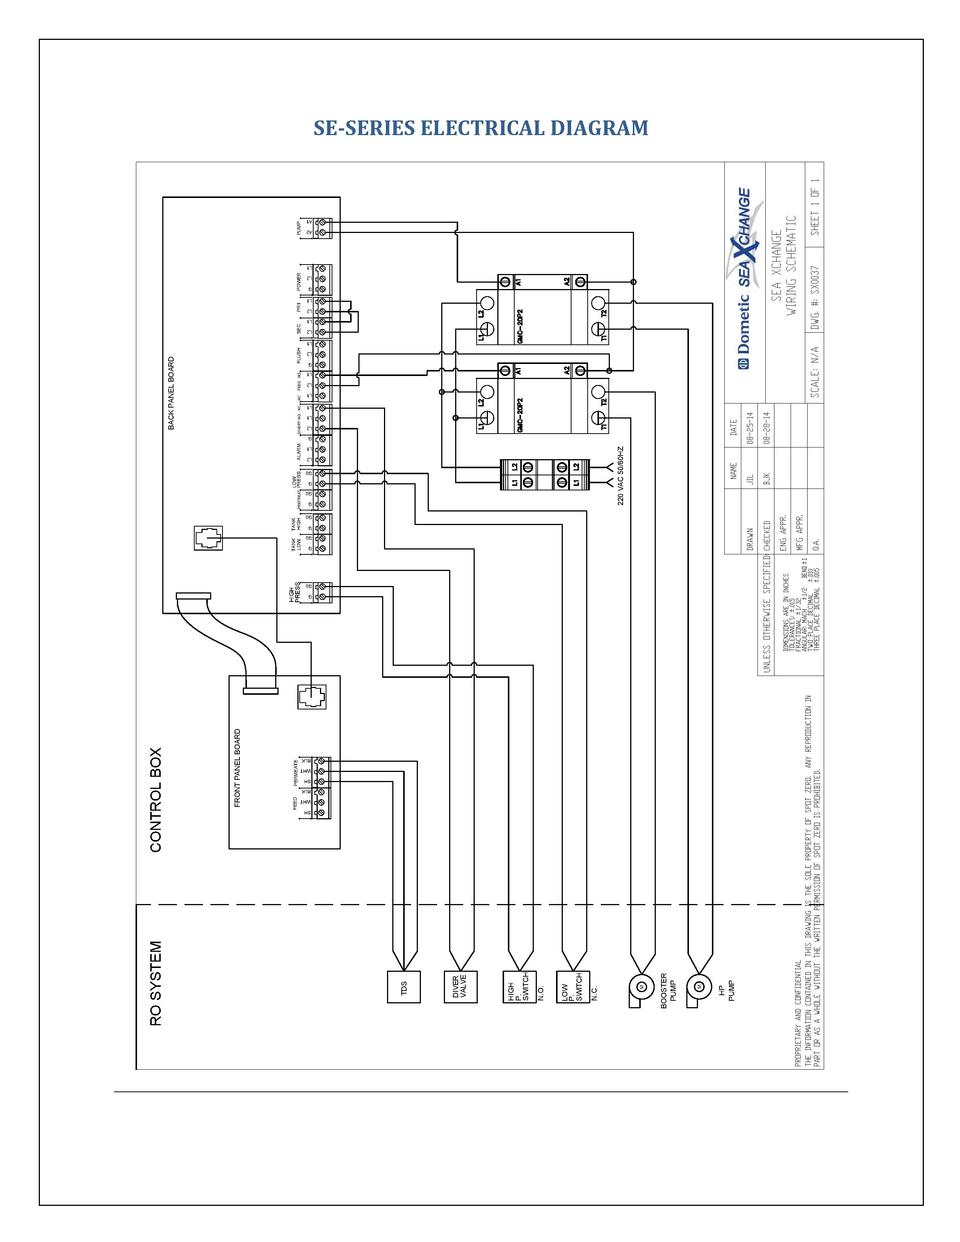 Snap Pump Control Panel Wiring Diagram 33 Images Of Board Booster 41 Diagrams